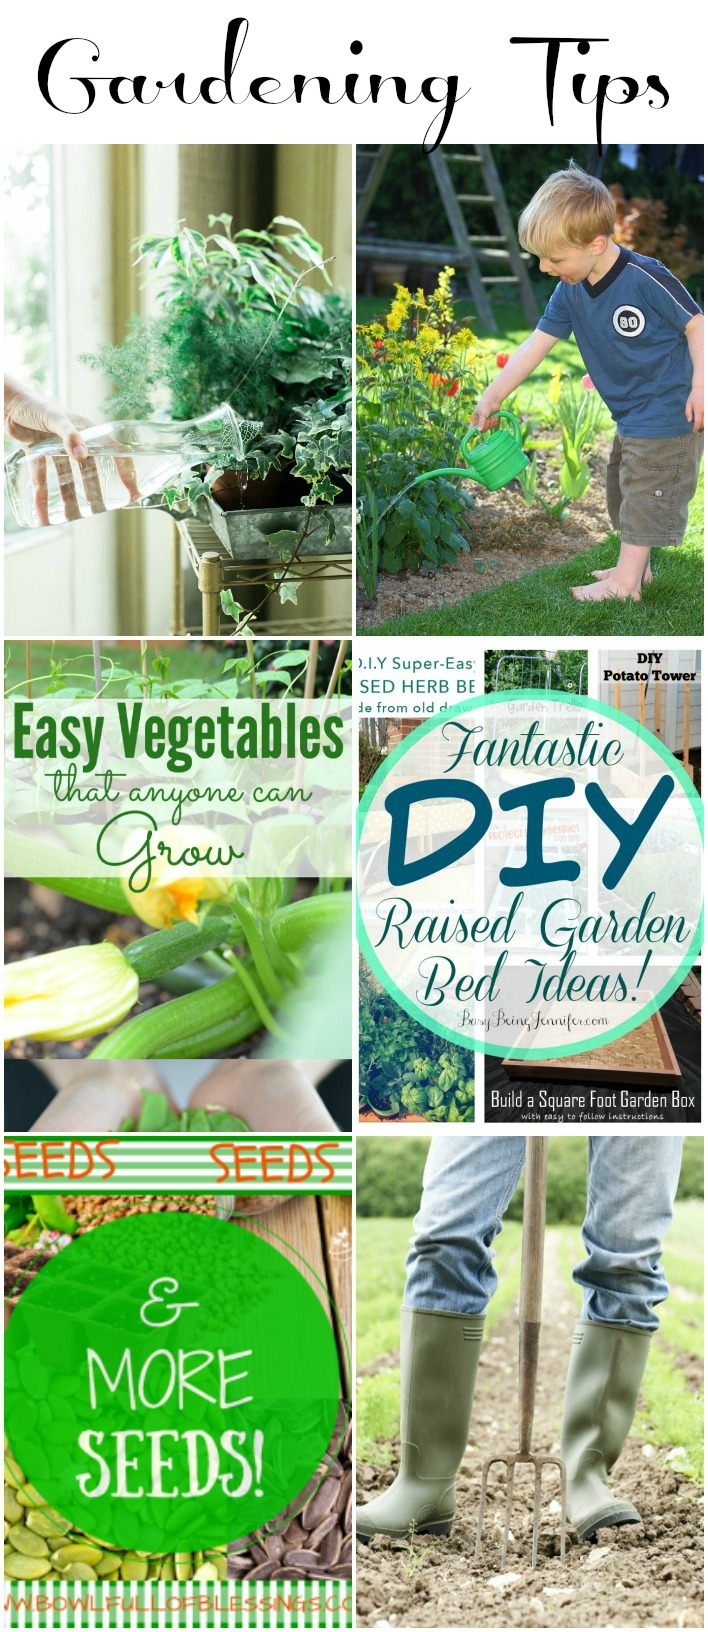 Gardening Tips collected by The NY Melrose Family